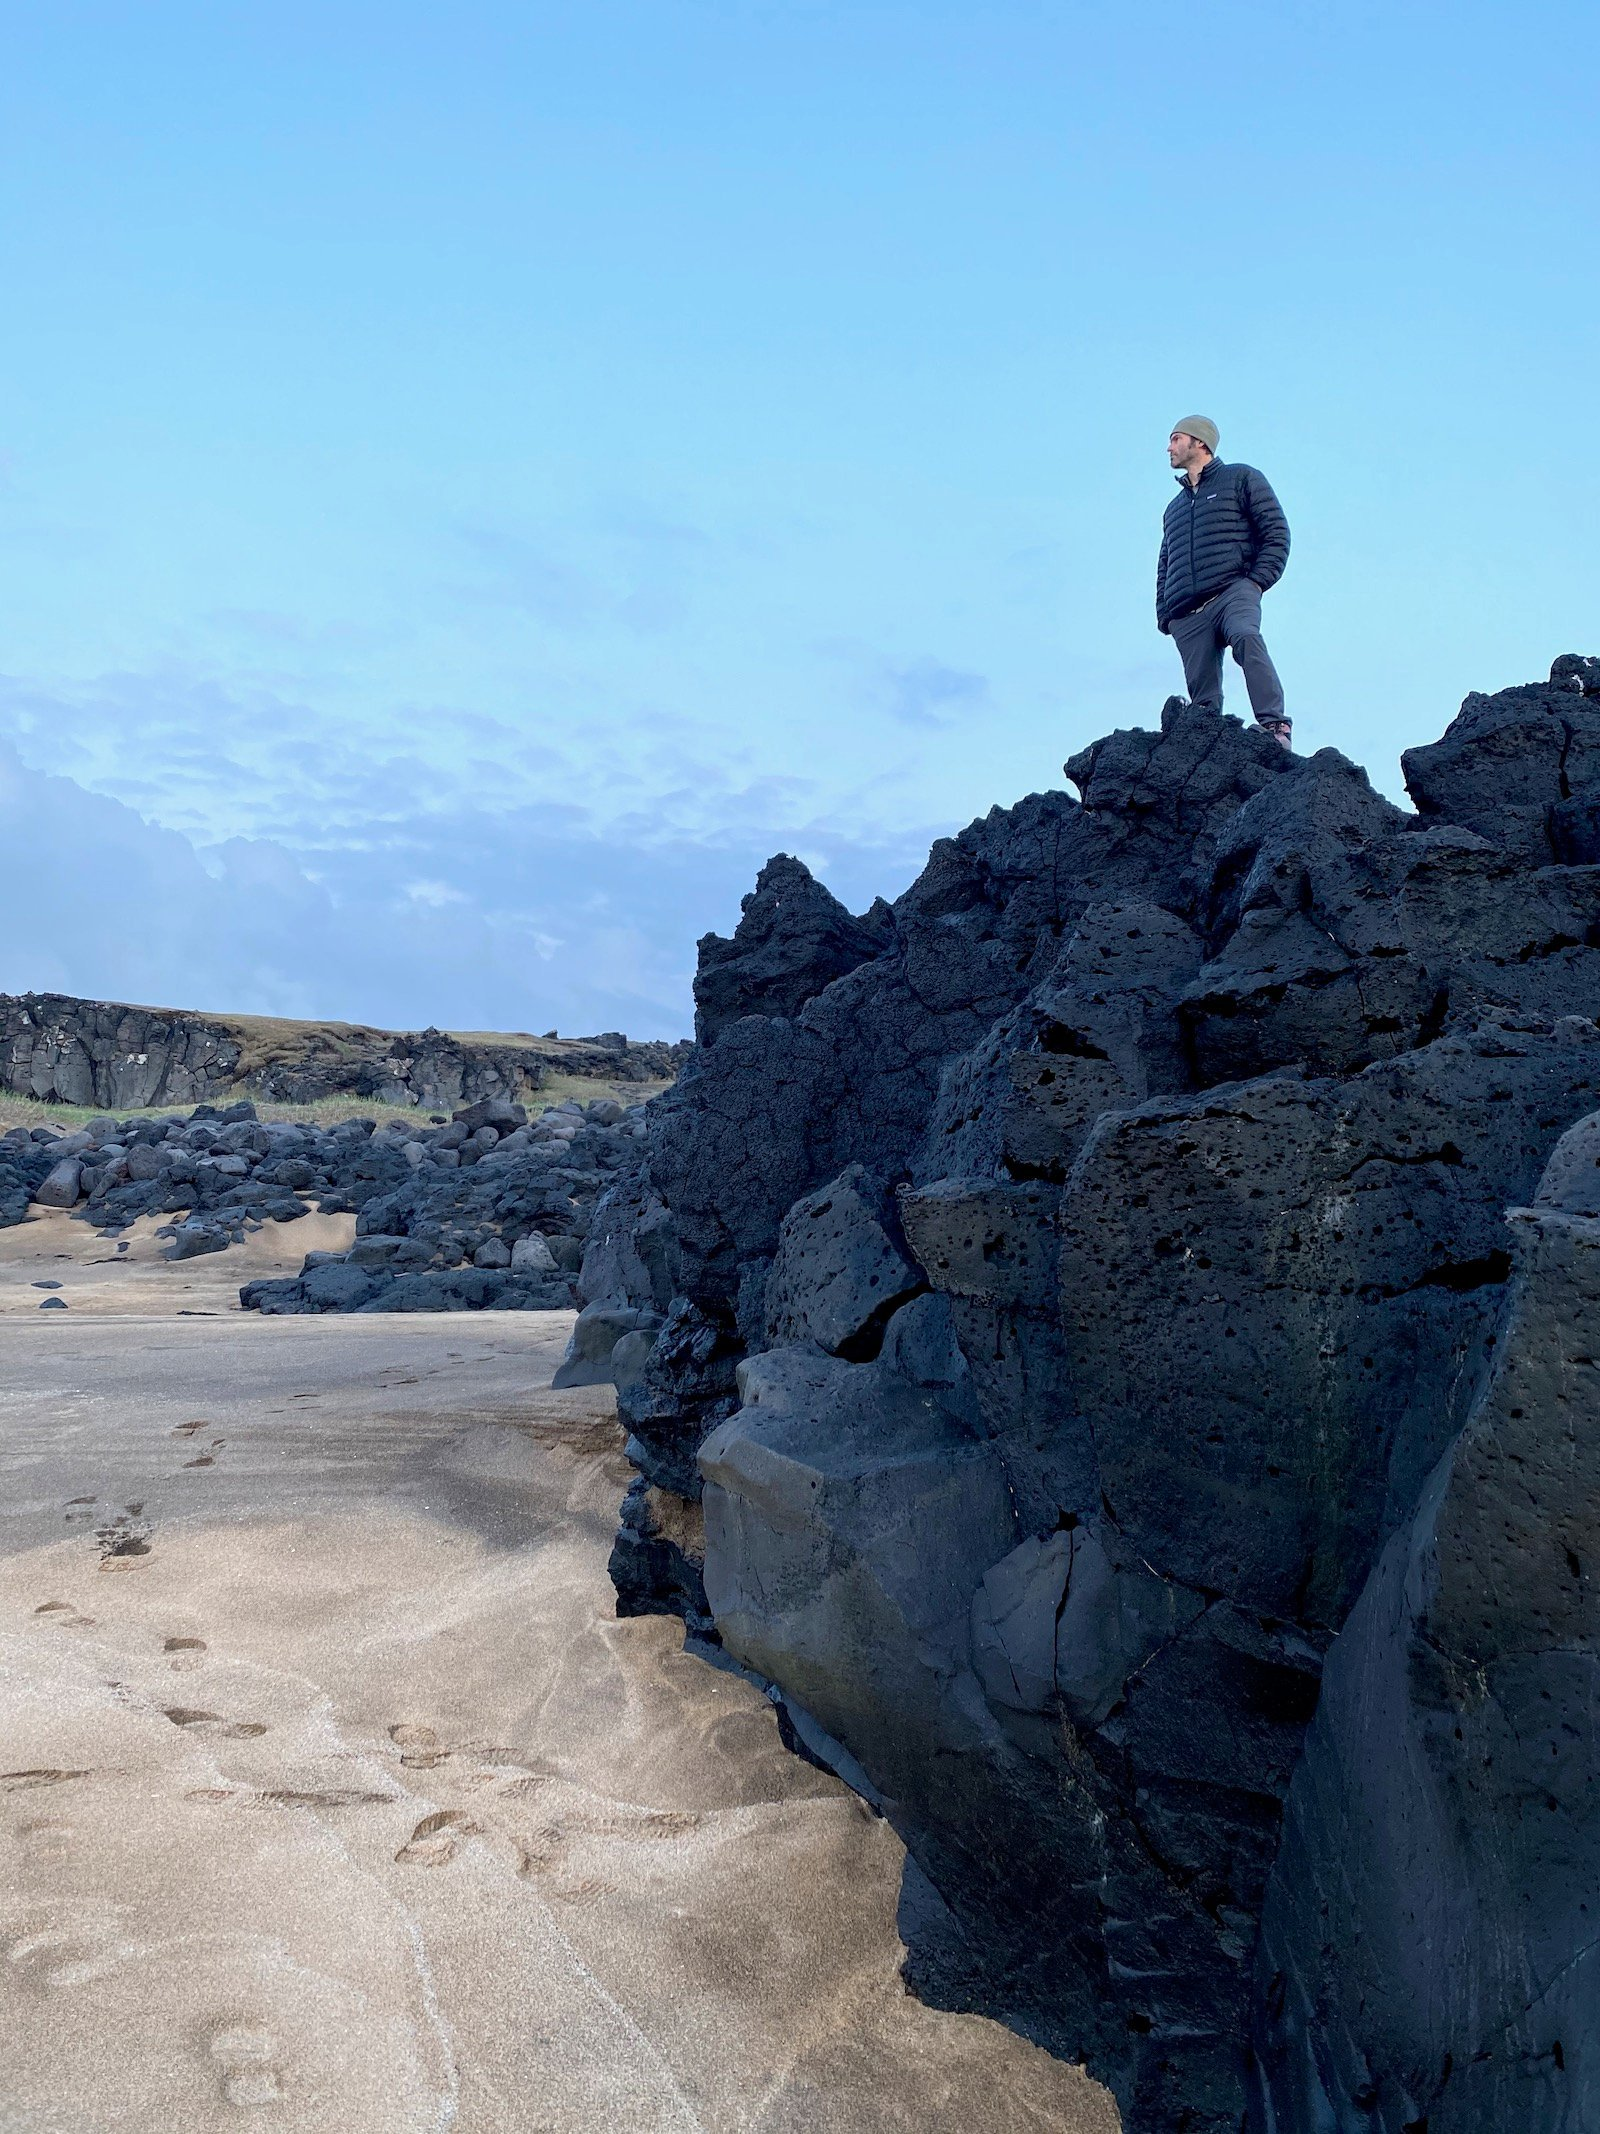 Father posing on top of black rocks at the White Sand beaches in Snæfellsjökull National Park.